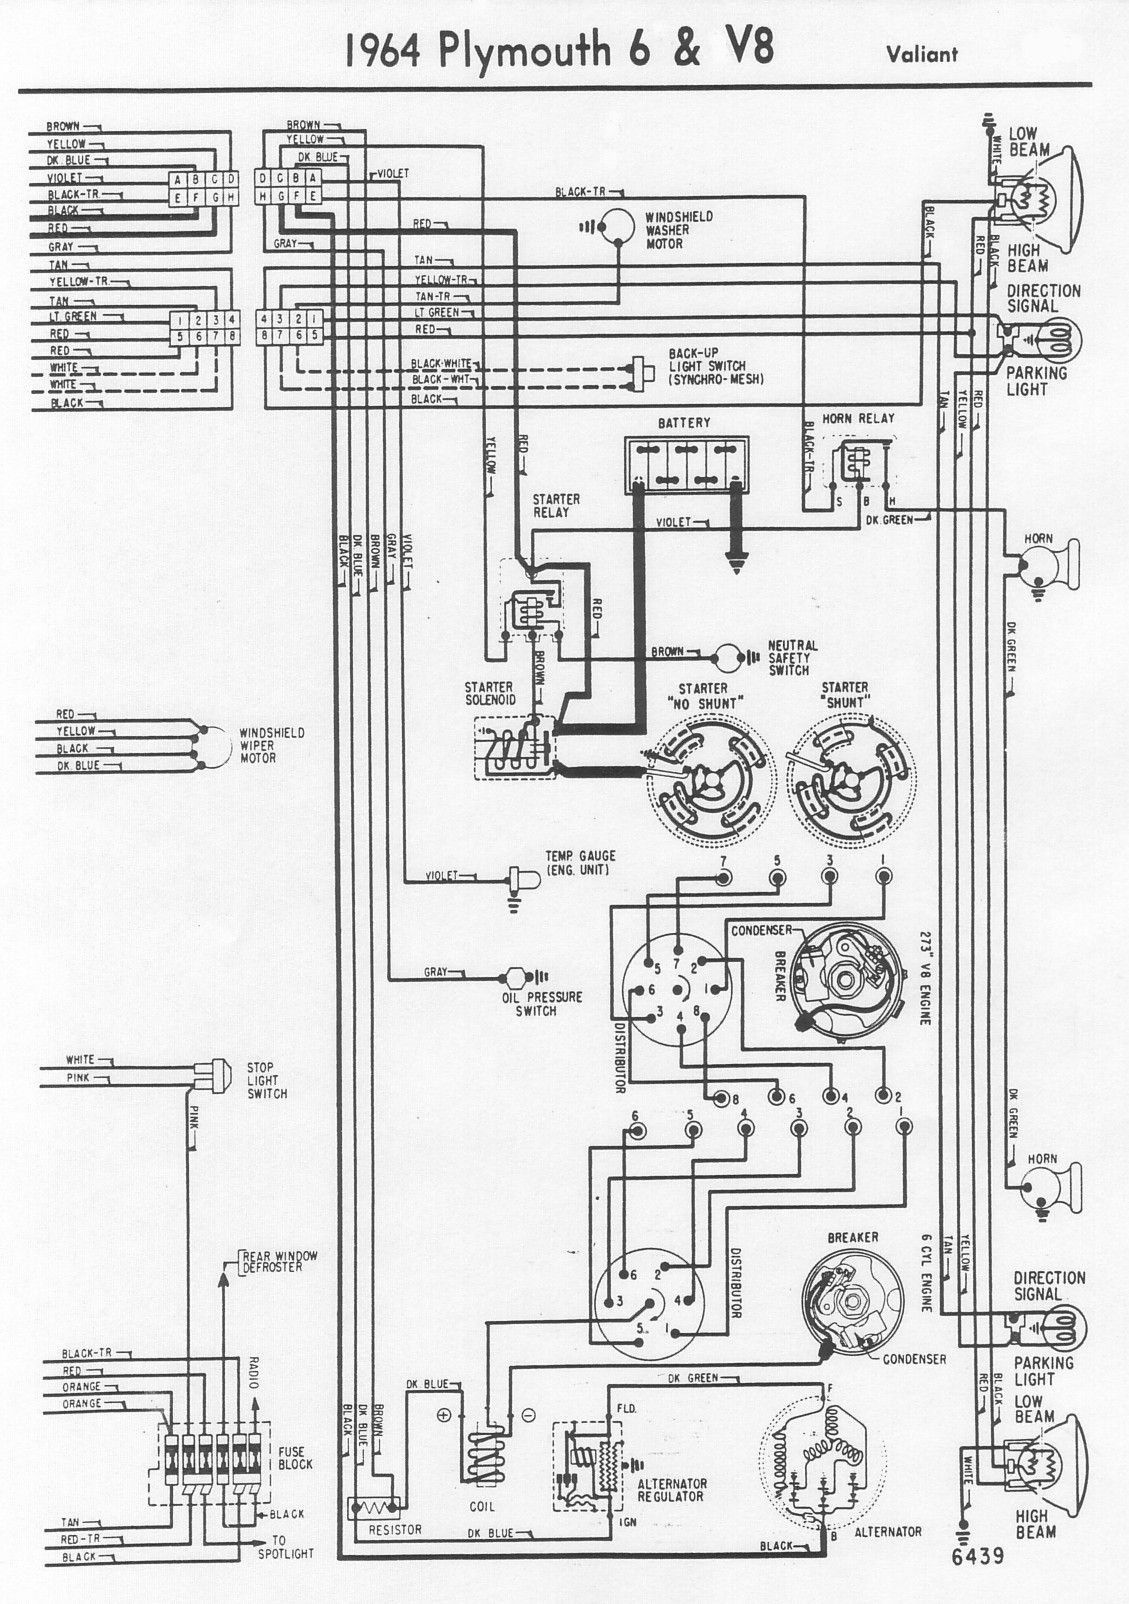 1965 Ply Barracuda Wiring Diagram - Jeep Mb Wiring for Wiring Diagram  SchematicsWiring Diagram Schematics